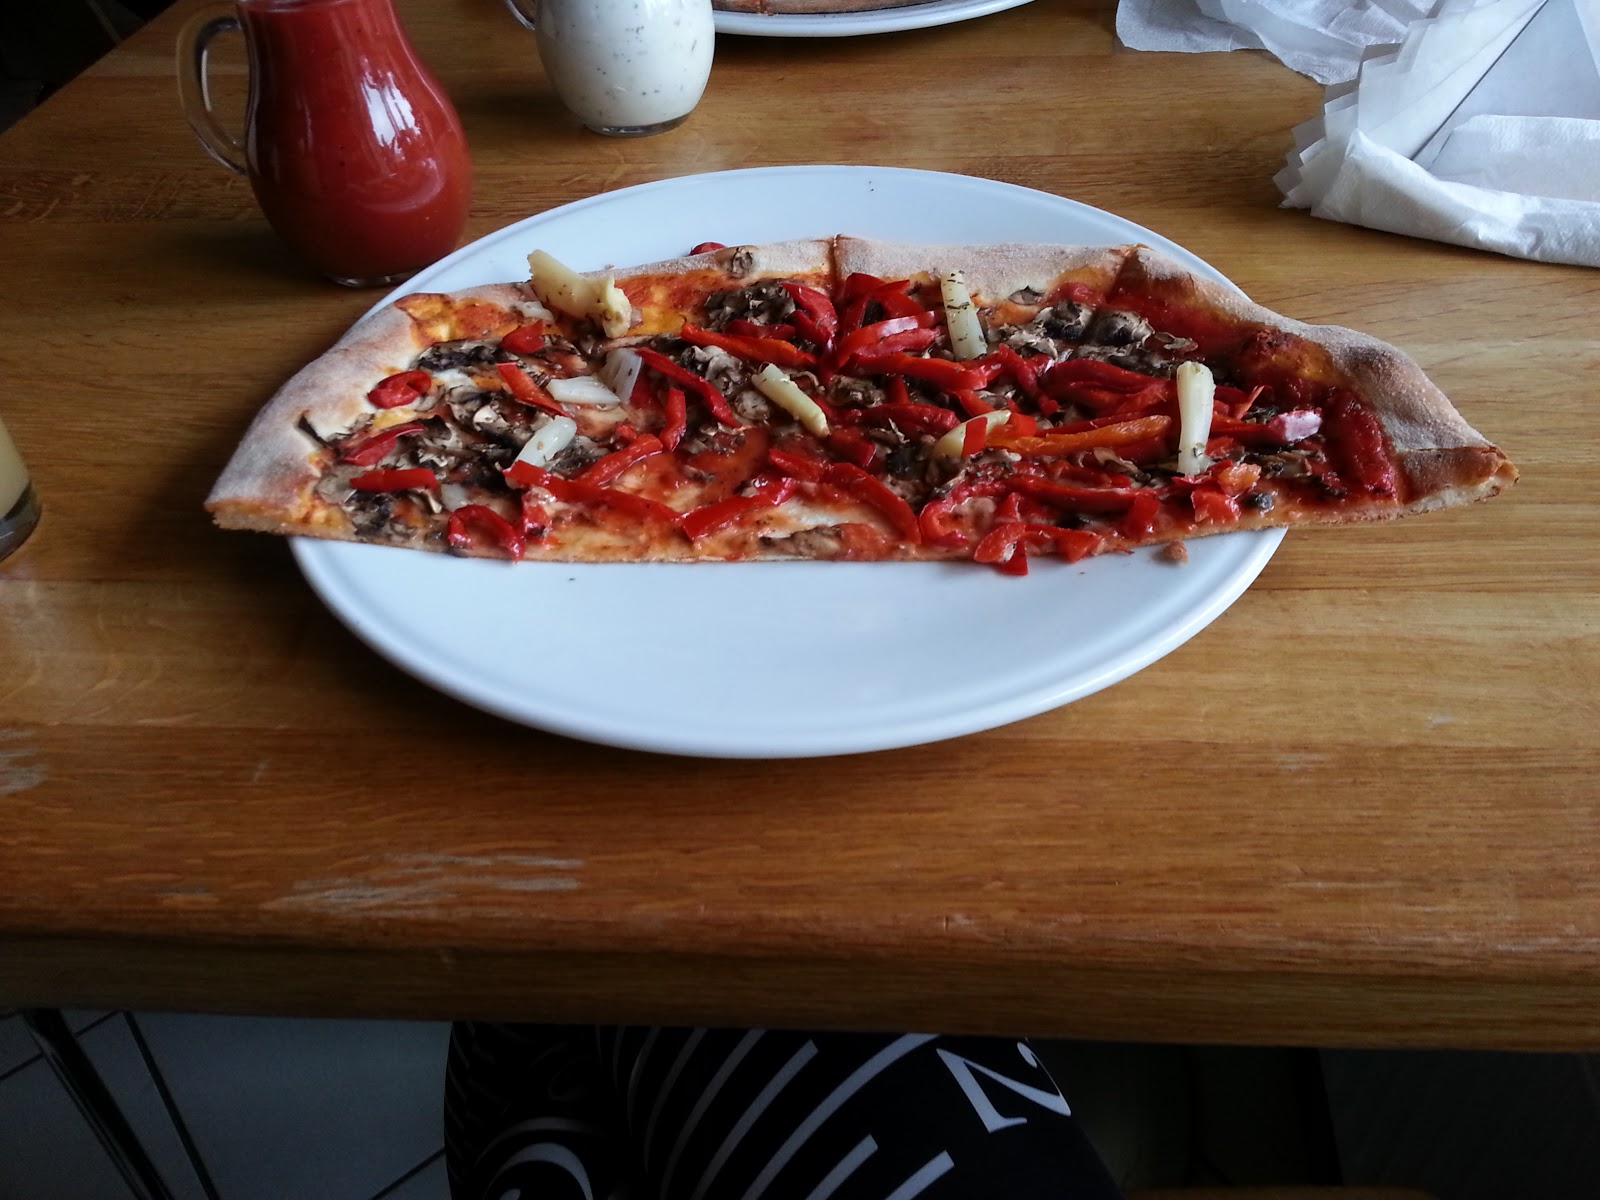 In Centro, Lodz, Poland, Vegan Pizza